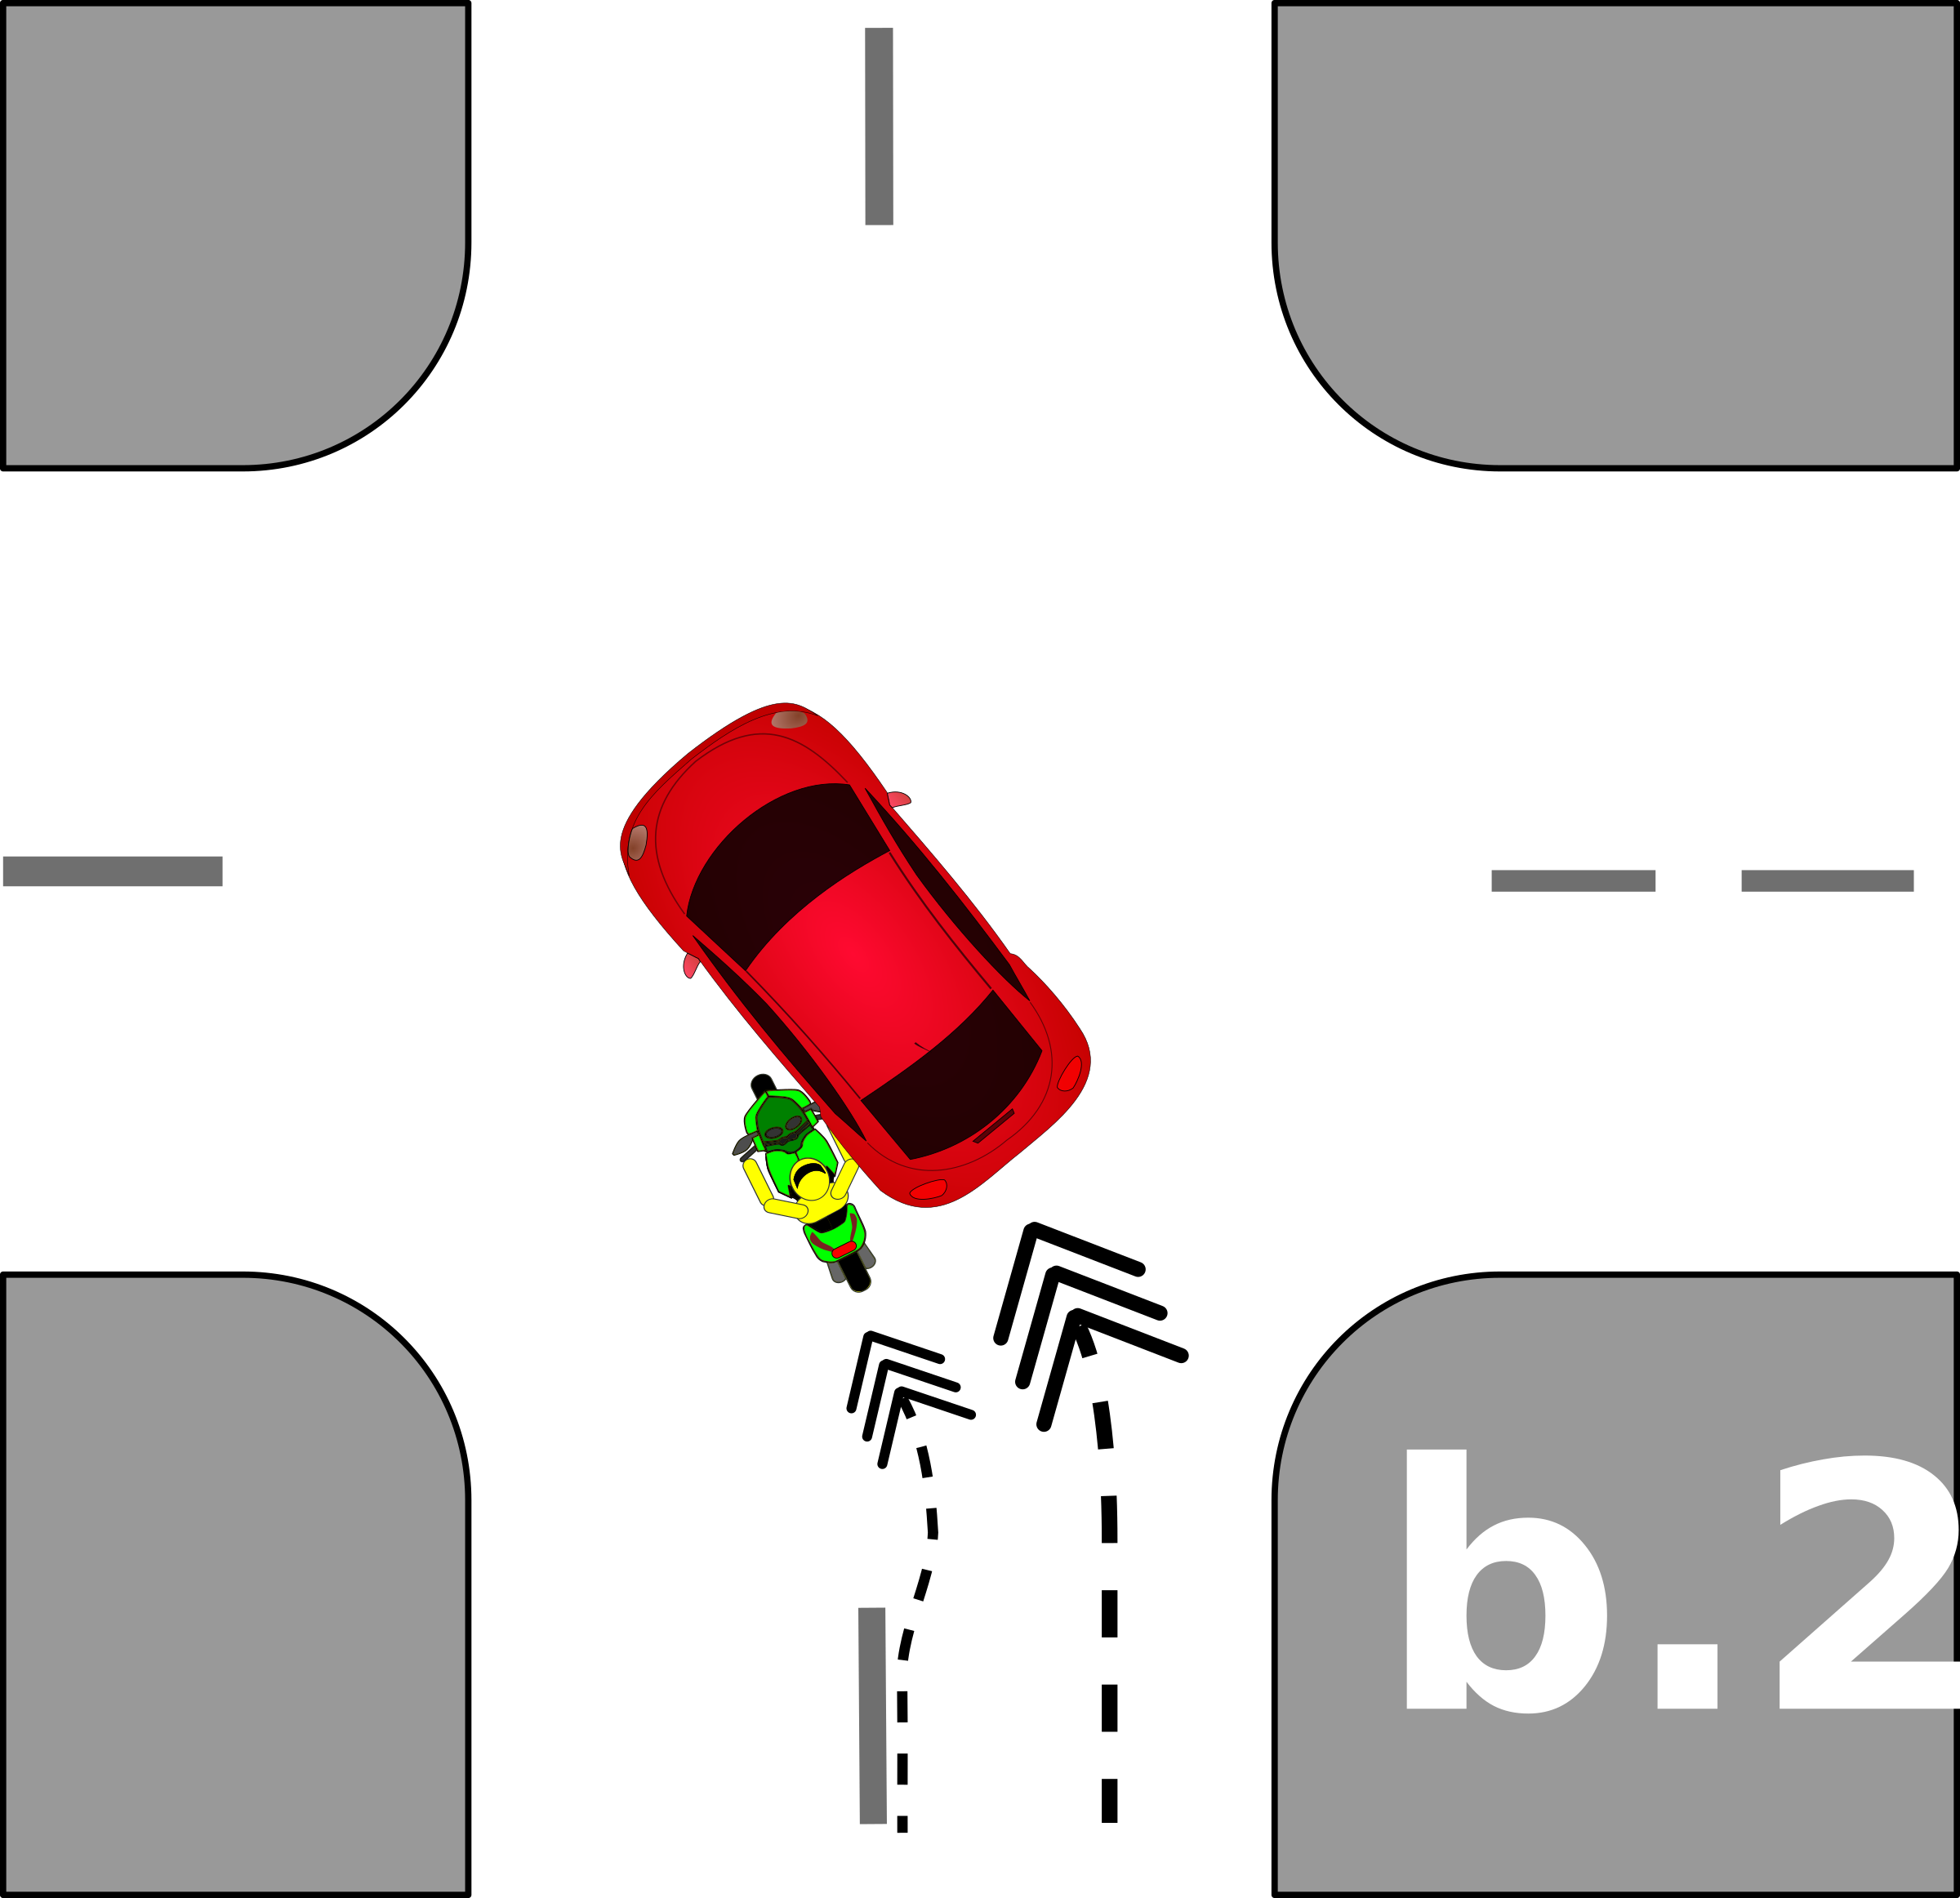 traffic accident pictograms b.2 by Gusta